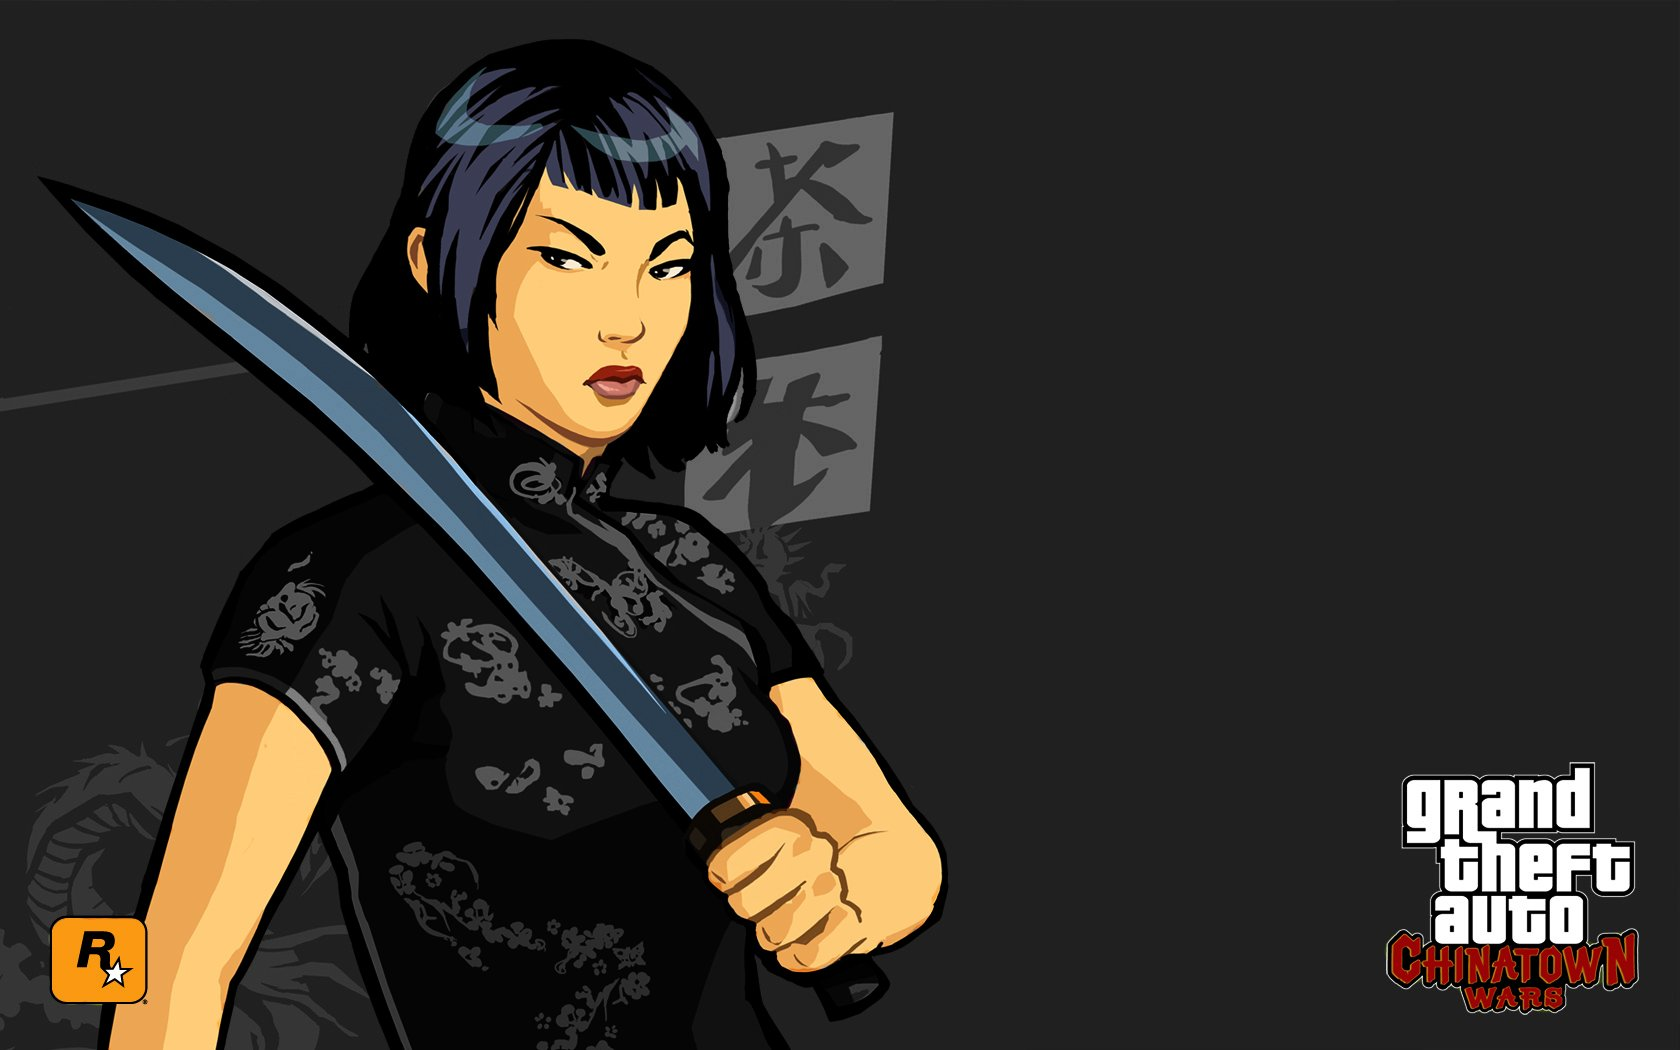 Gta Grand Theft Auto Chinatown Wars Video Game Ling Shan Girl Beauty Wallpaper X  Wallpaperup